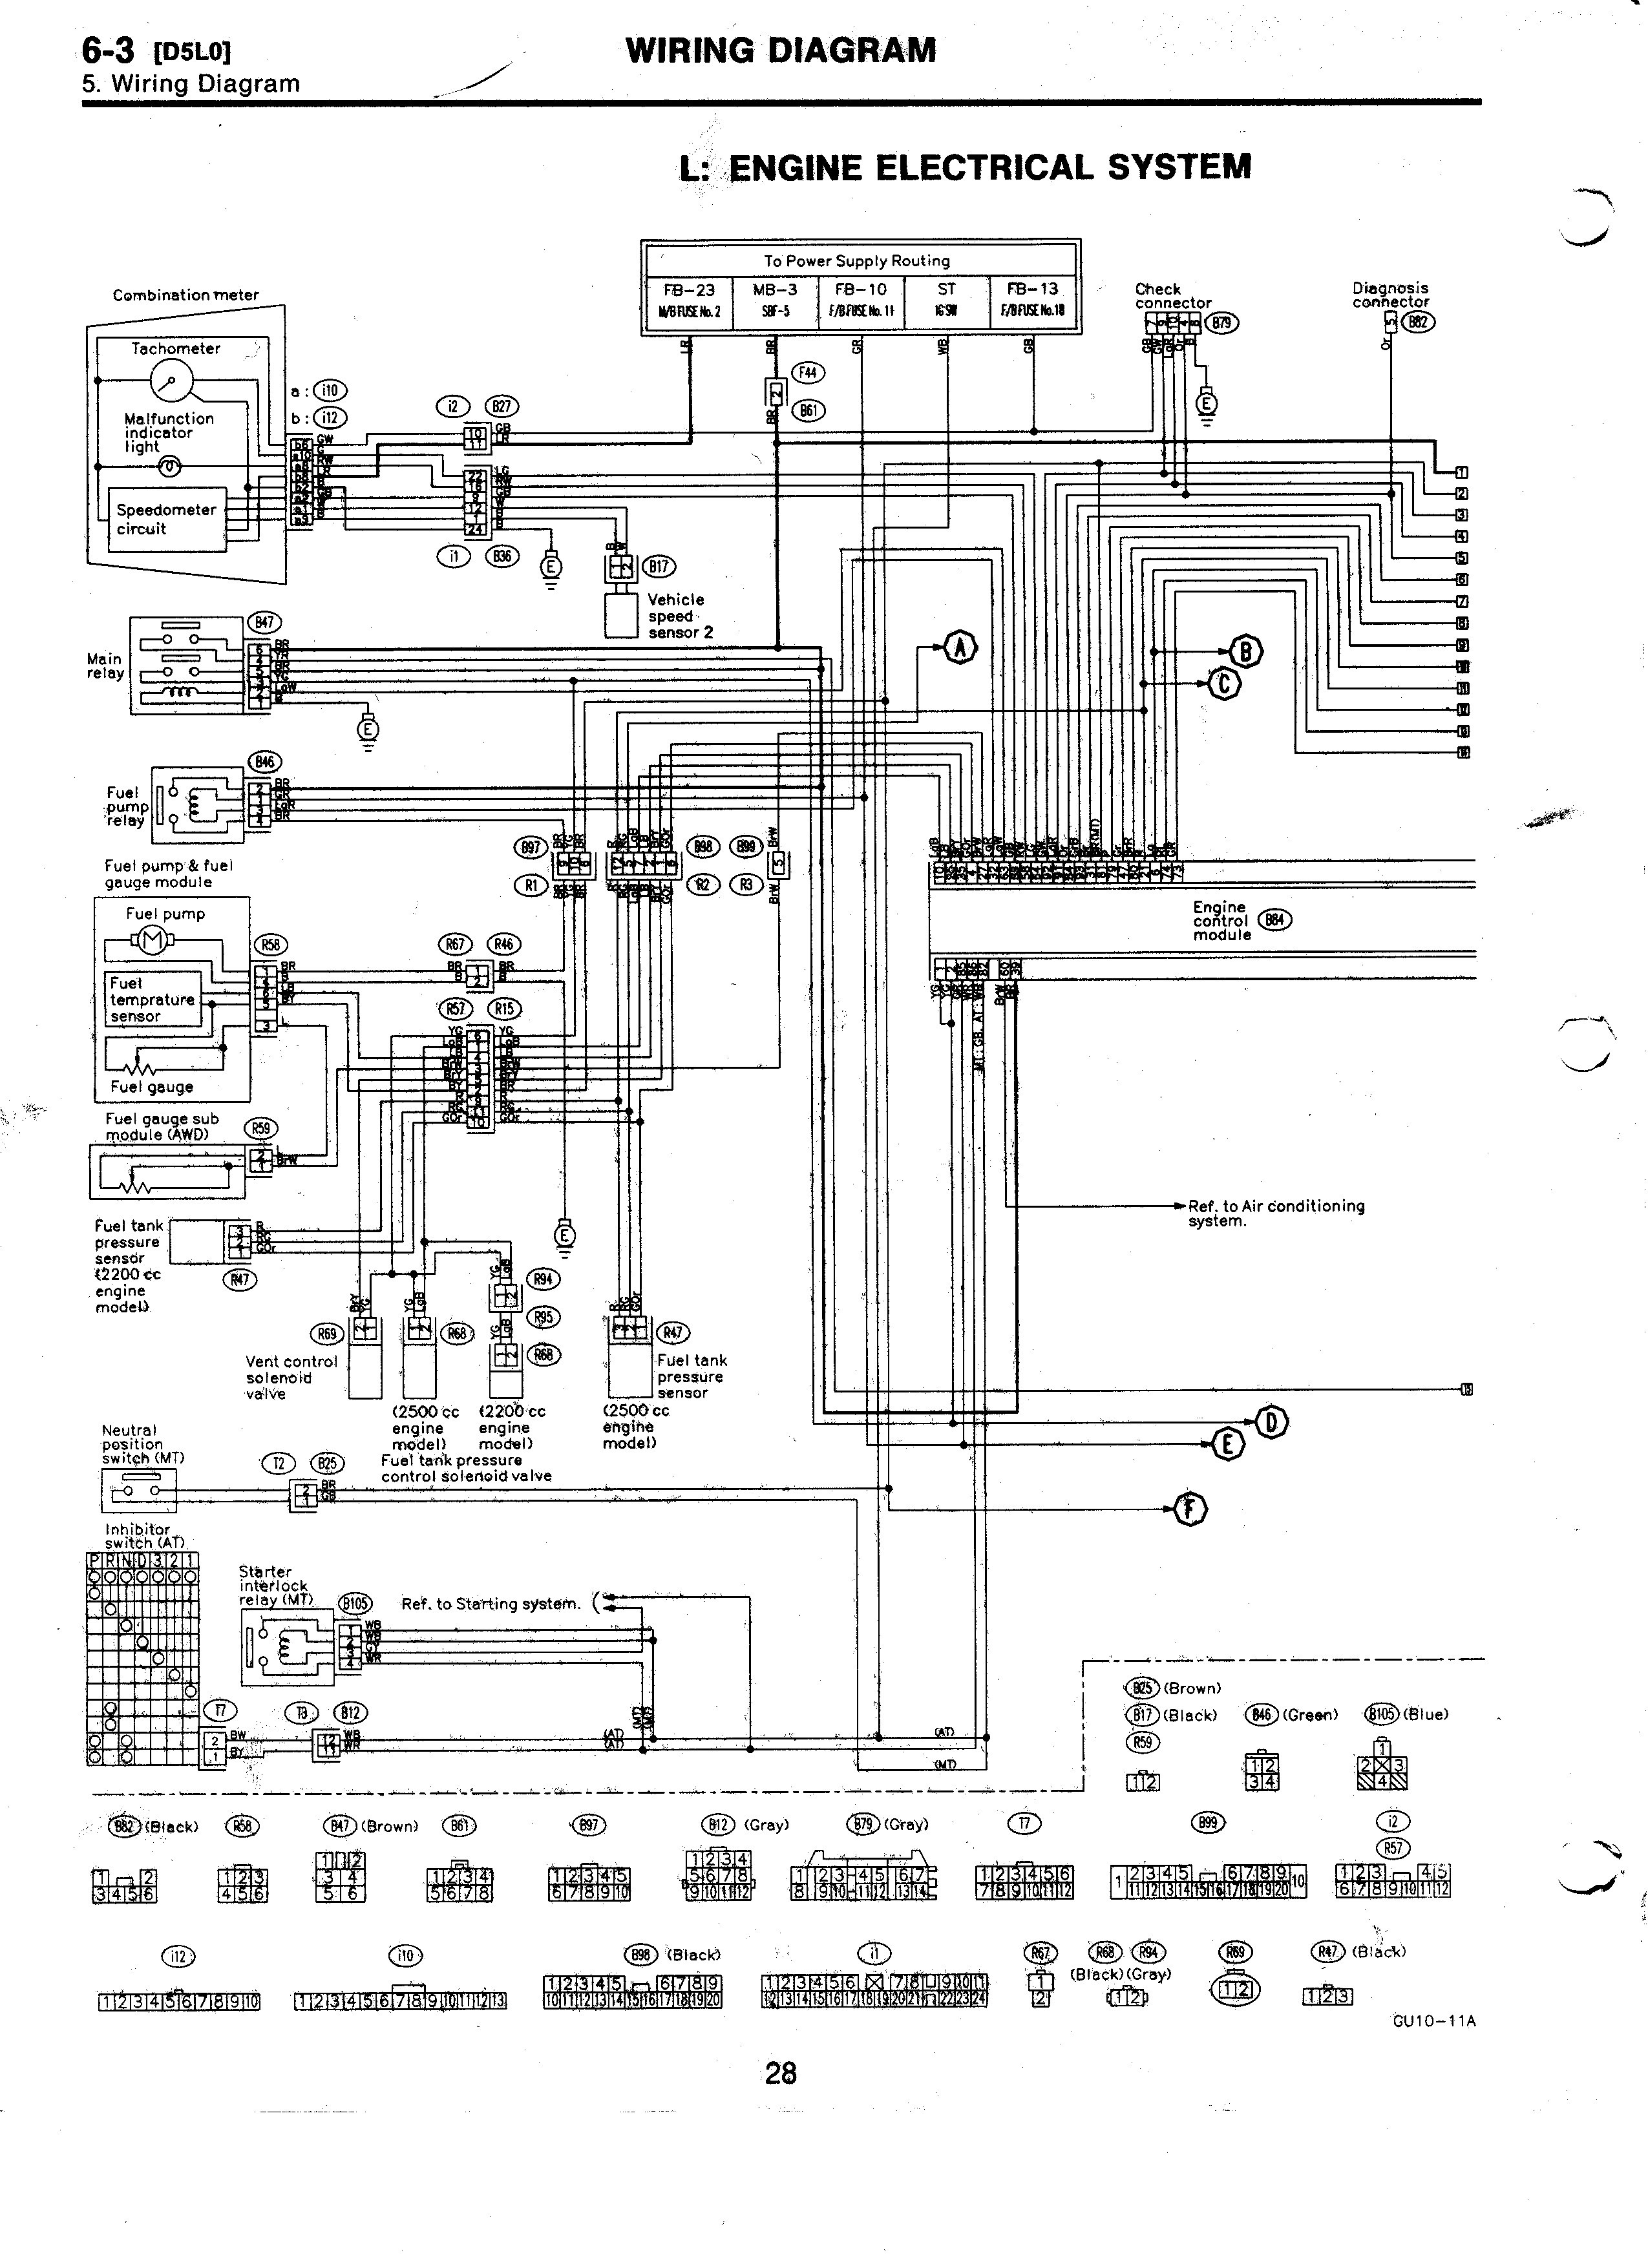 Peterbilt Horn Wiring Diagram Free Picture Schematic Library Of 1992 379 Headlight Wire Data Schema Pto Smart Diagrams U2022 Rh Emgsolutions Co 1988 2001